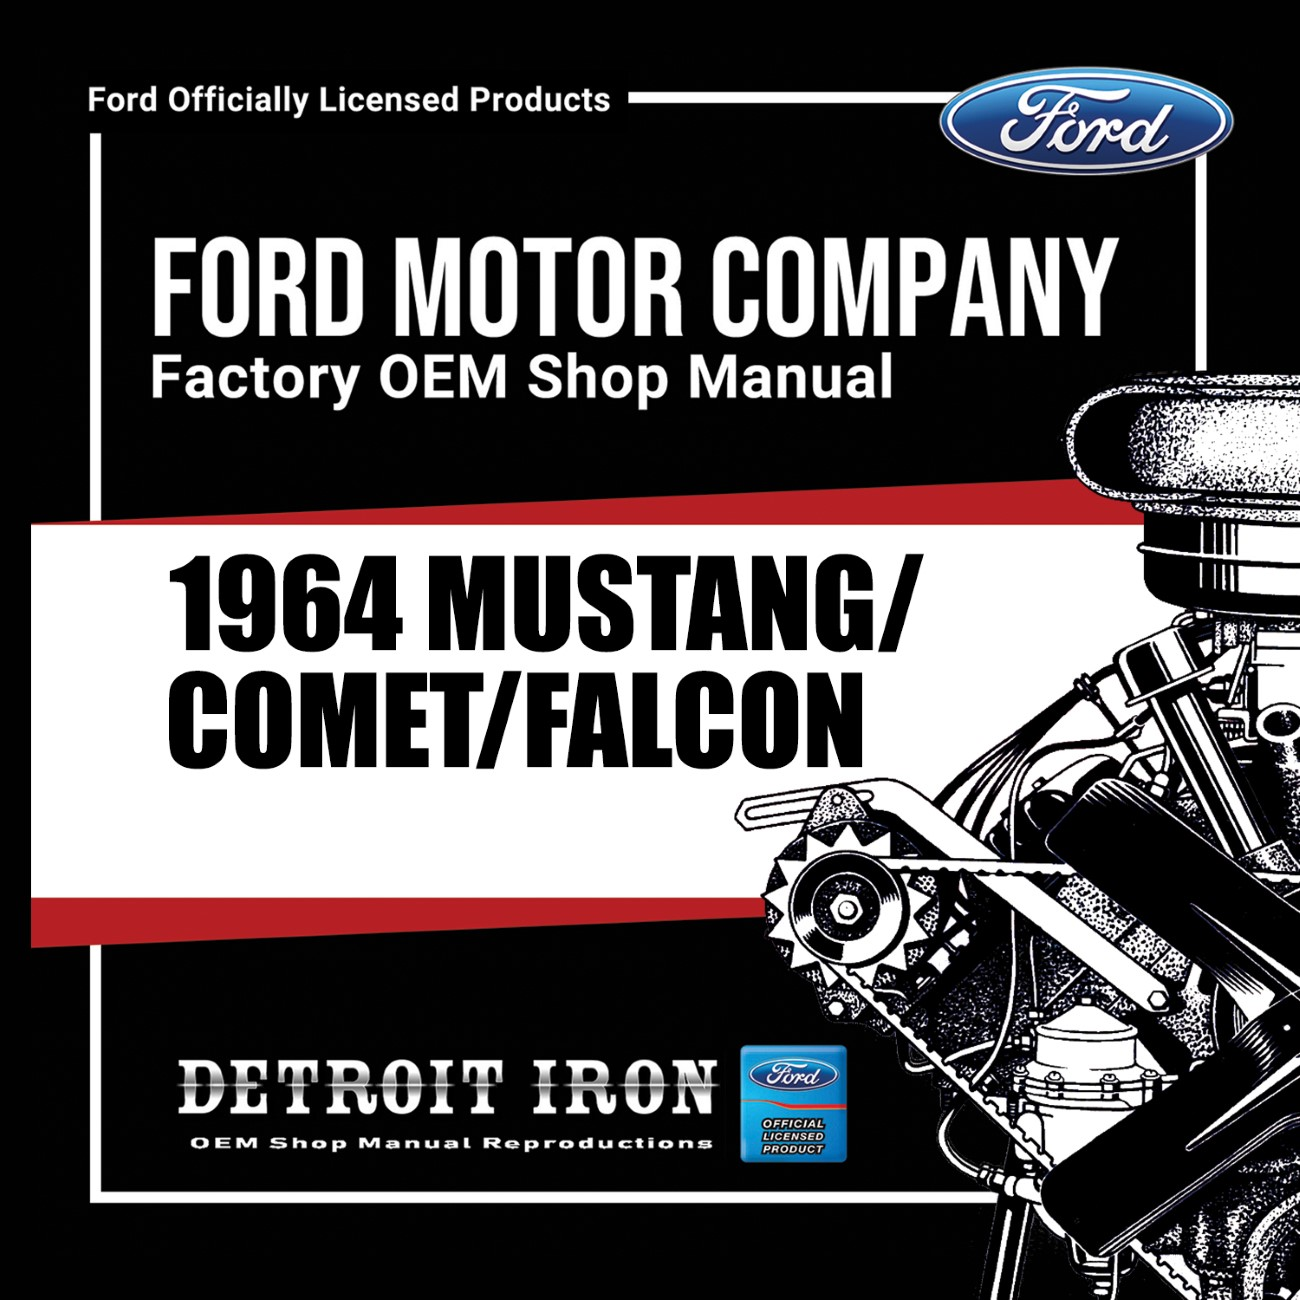 1964 Mustang Falcon Comet Factory Oem Shop Manuals On Cd